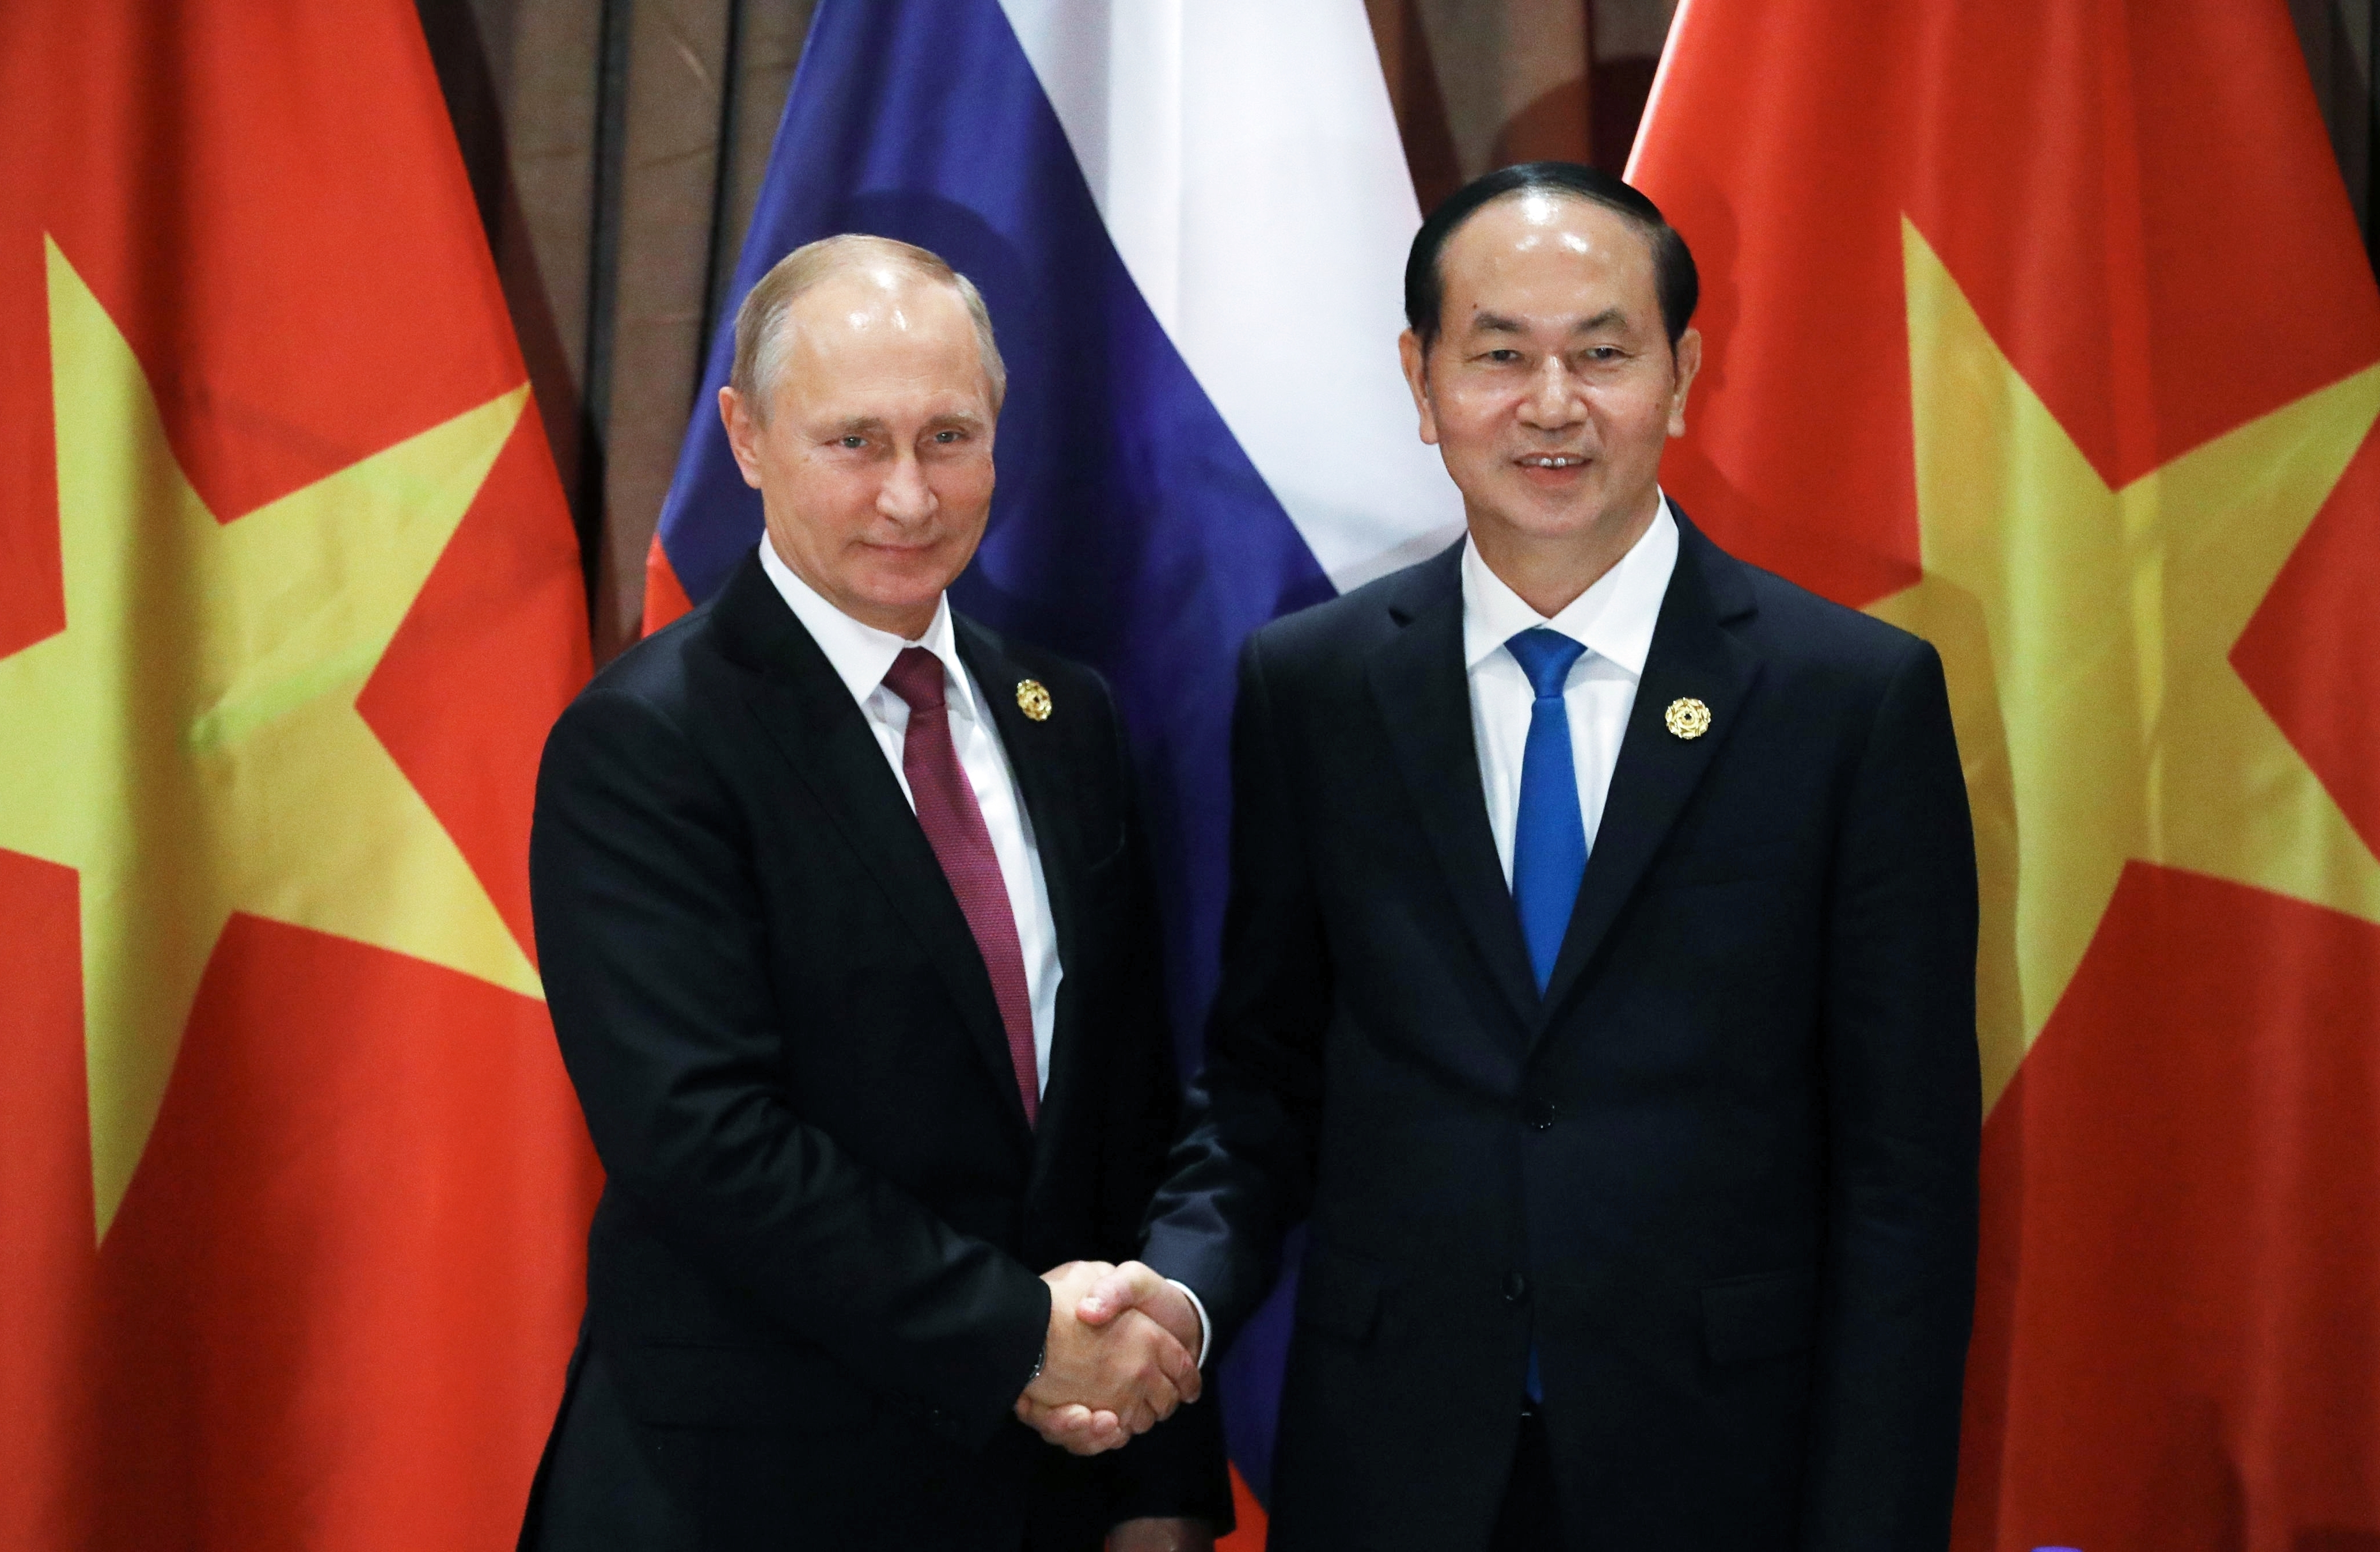 Russia's President Vladimir Putin, left, and Vietnam's President Tran Dai Quang shake hands during their meeting at the APEC Business Advisory Council dialogue in Danang, Vietnam Friday, Nov. 10, 2017. (Mikhail Klimentyev, Sputnik, Kremlin Pool Photo via AP)